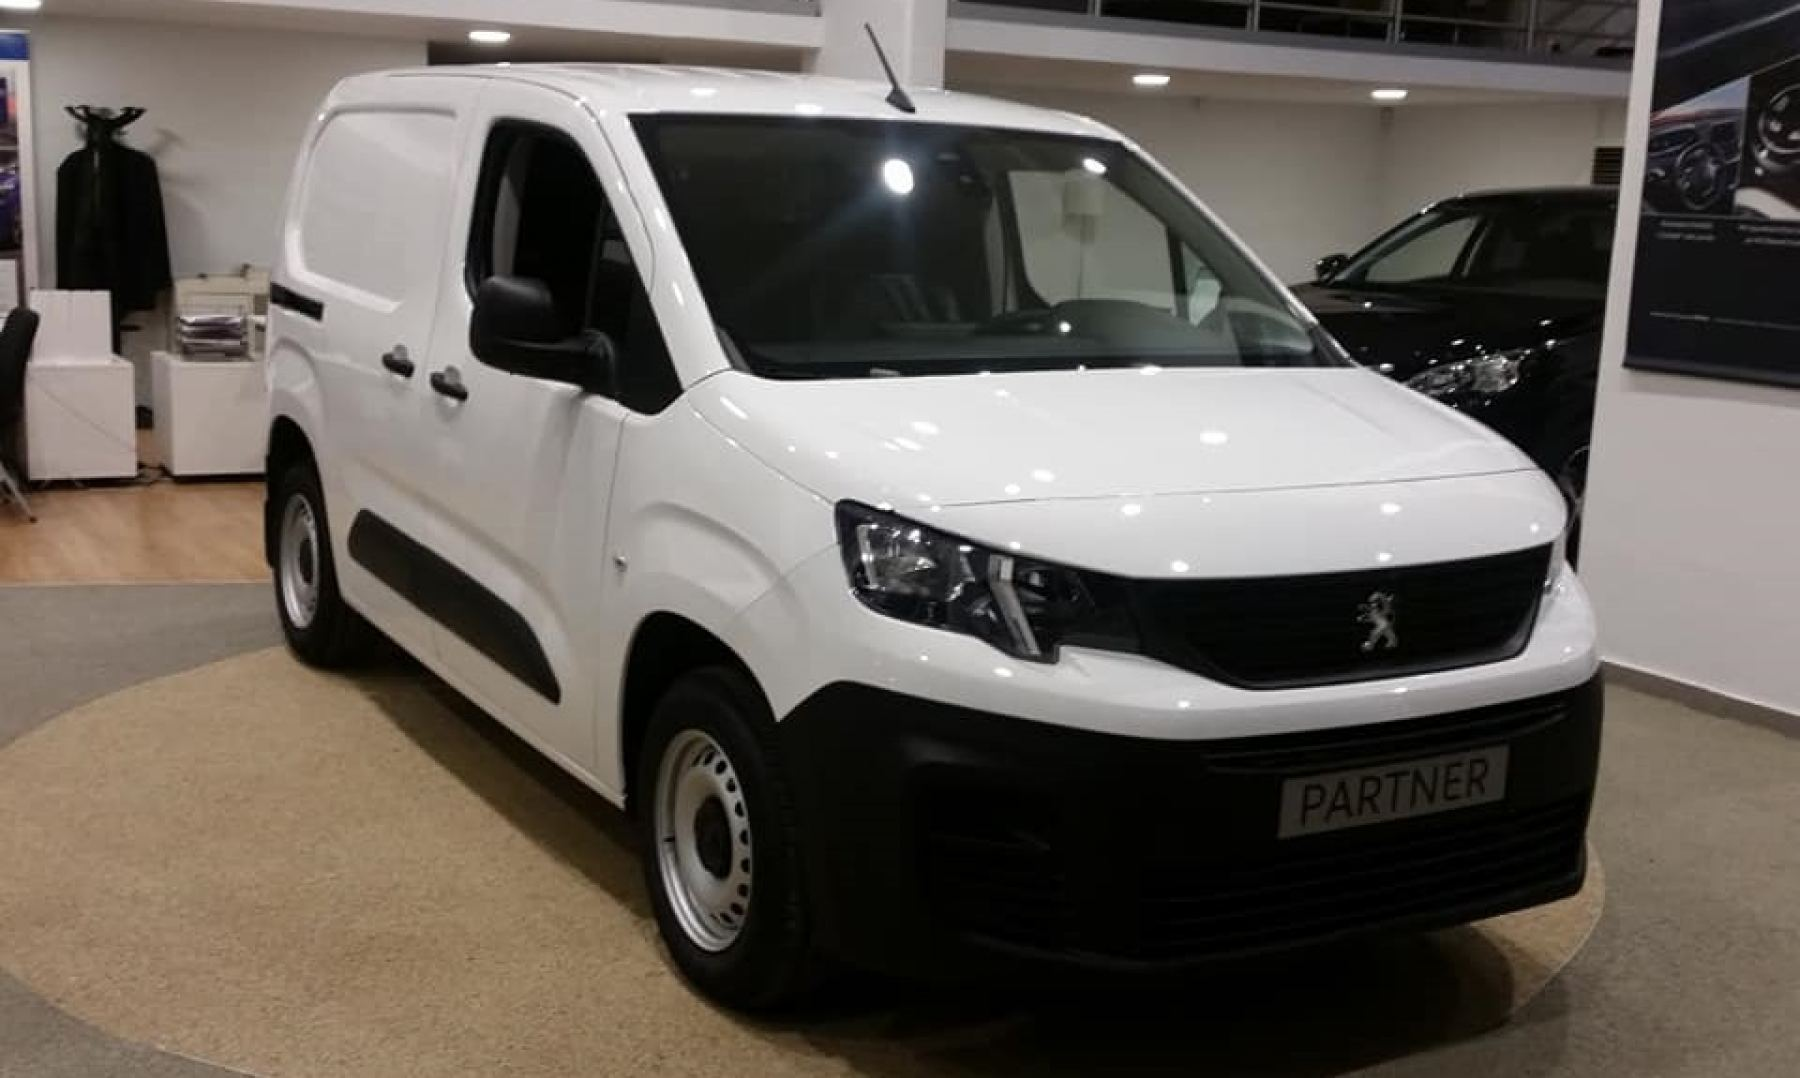 Peugeot Partner: To International Van Of The Year 2019 ήρθε στην Λαμία!